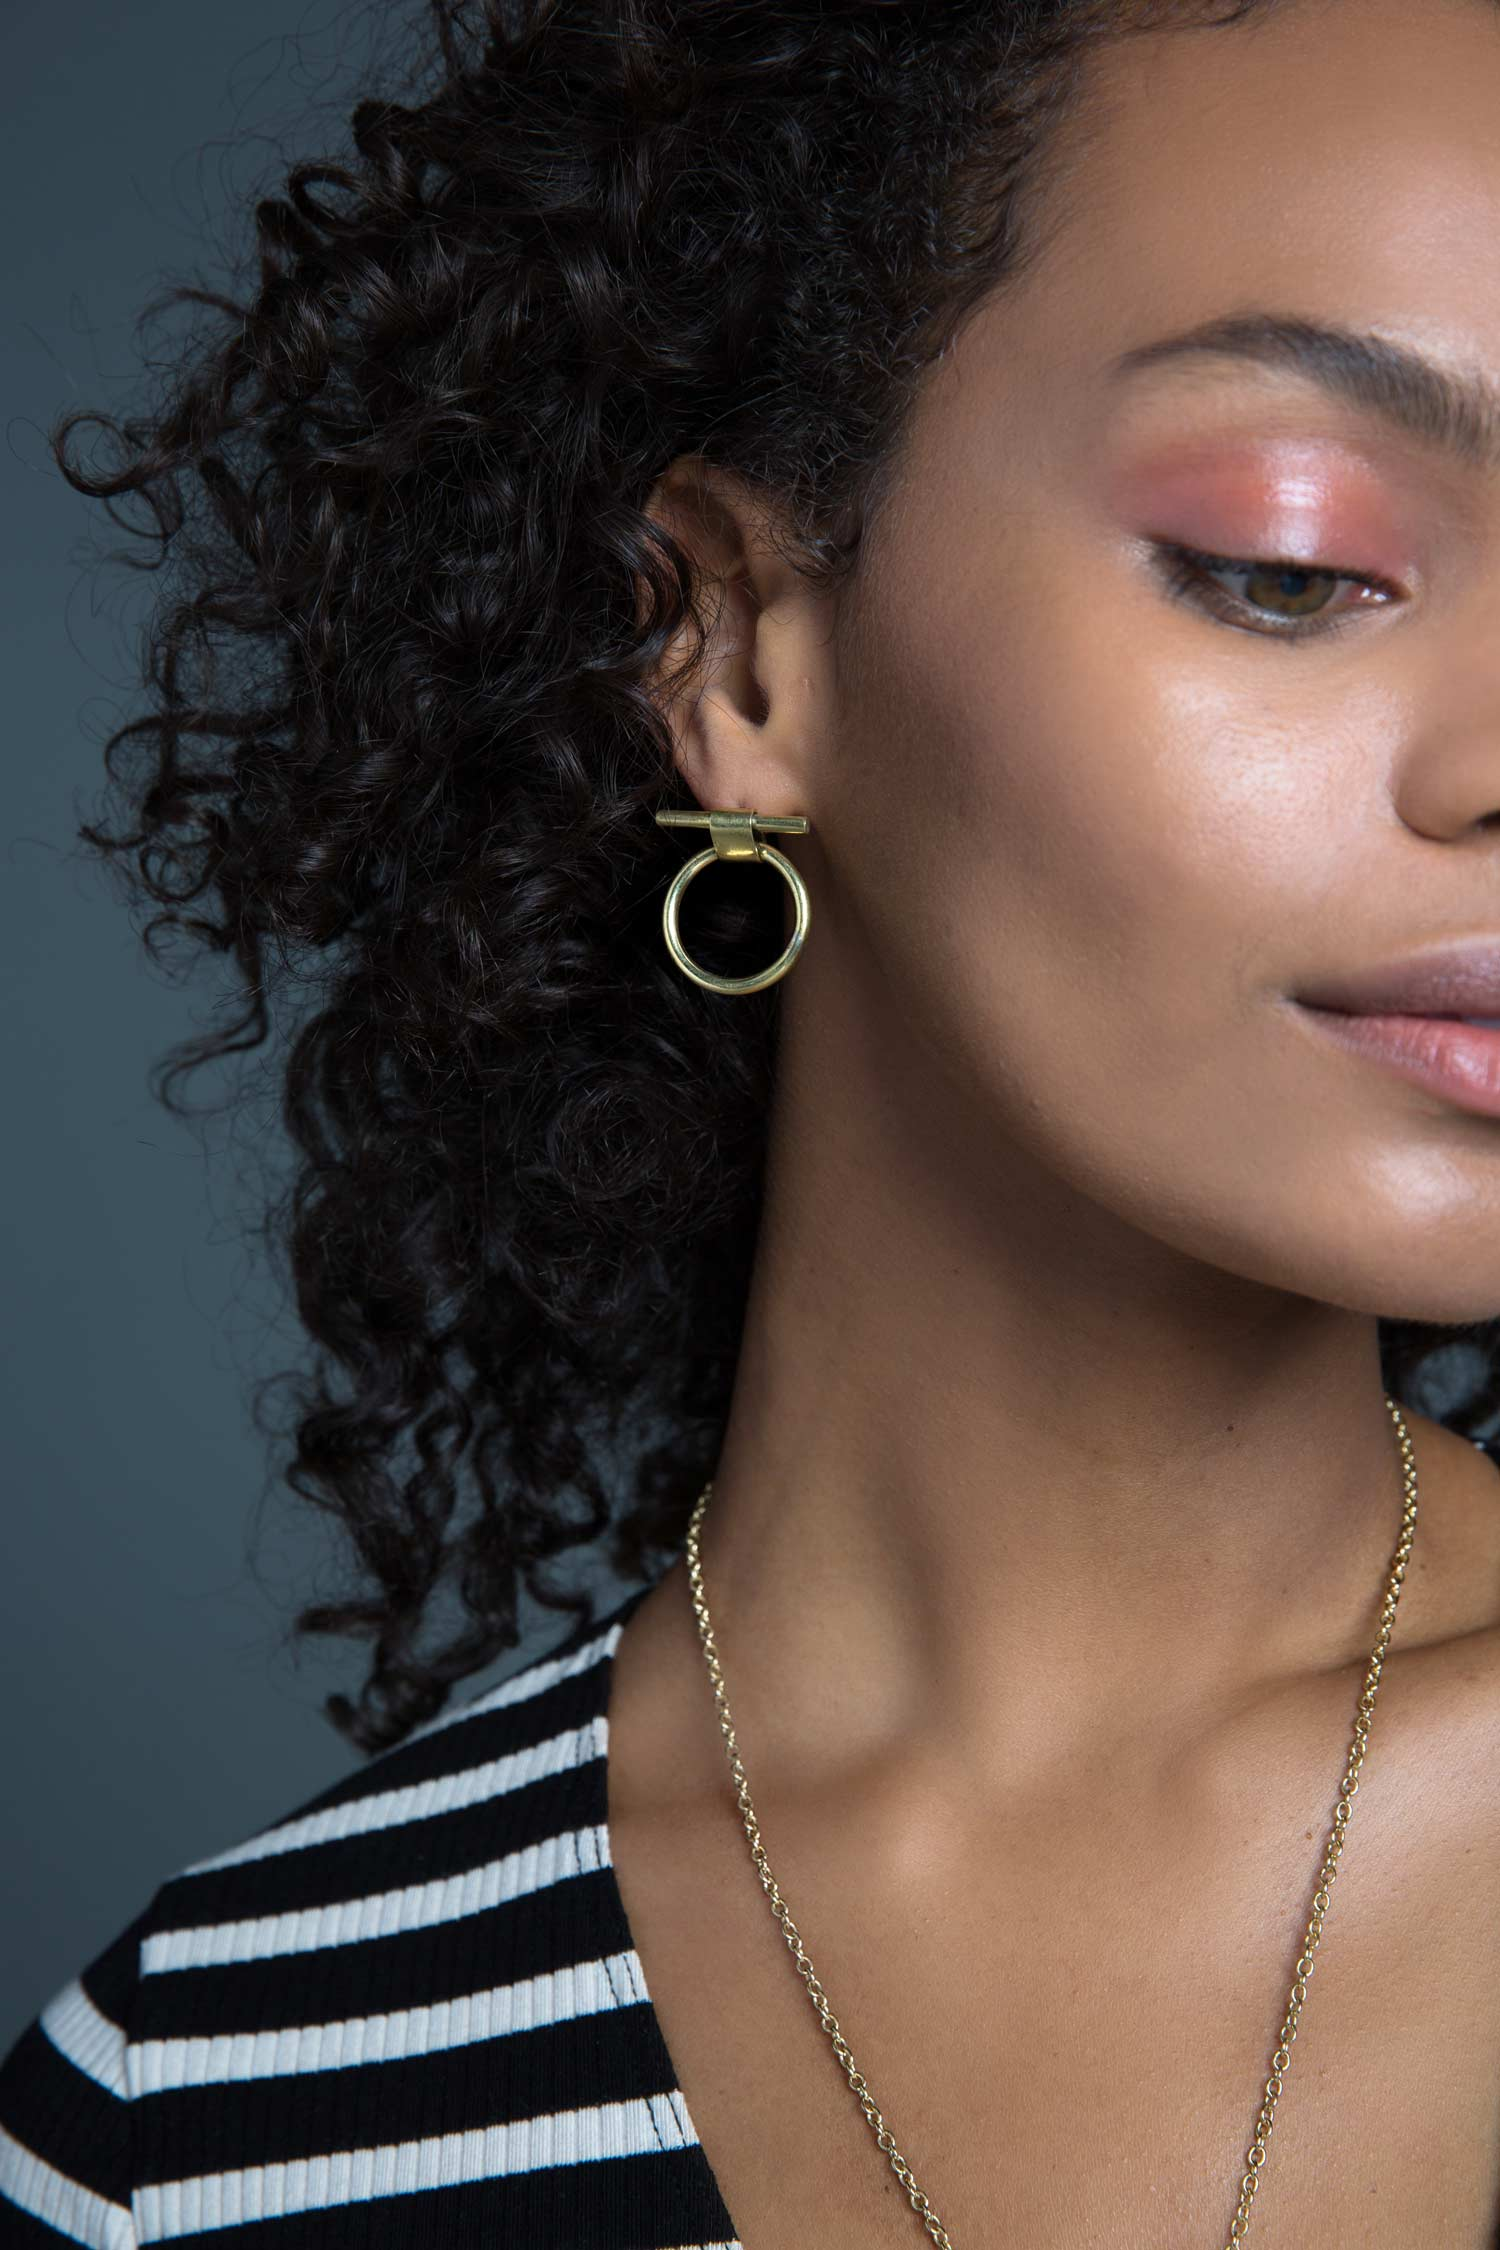 Ethically Made Jewelry | SOKO Isle Stud Earrings in Recycled Brass